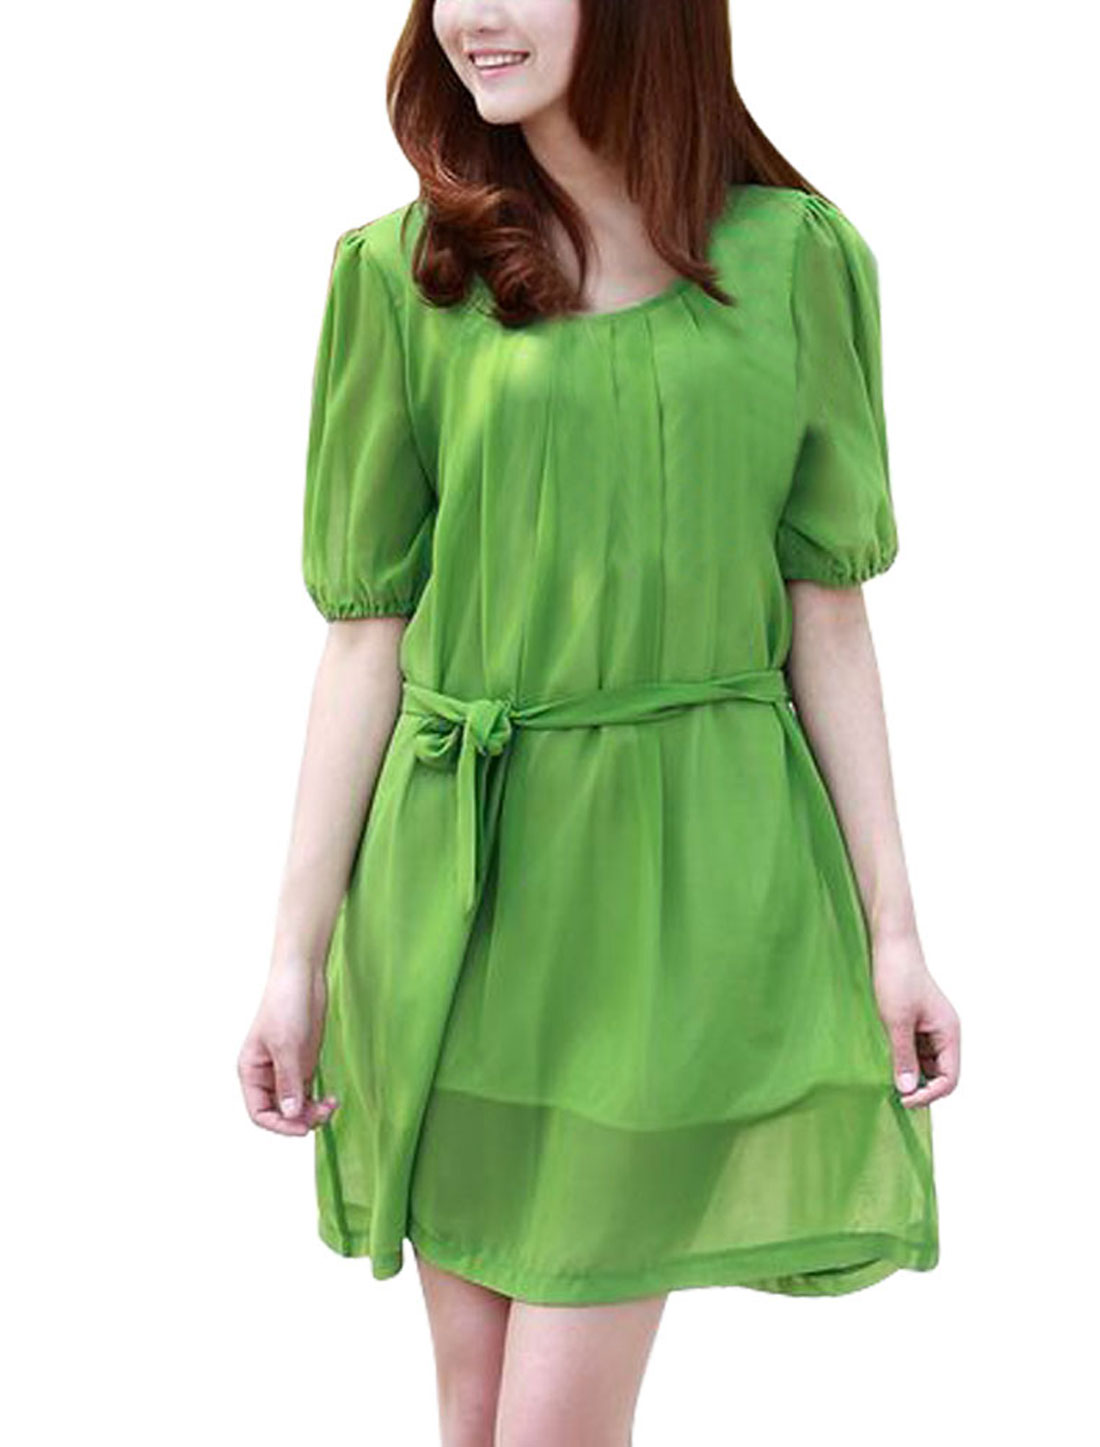 Maternity Pregnancy Green Solid Color Short Sleeve Knee-length Chiffon Dress L